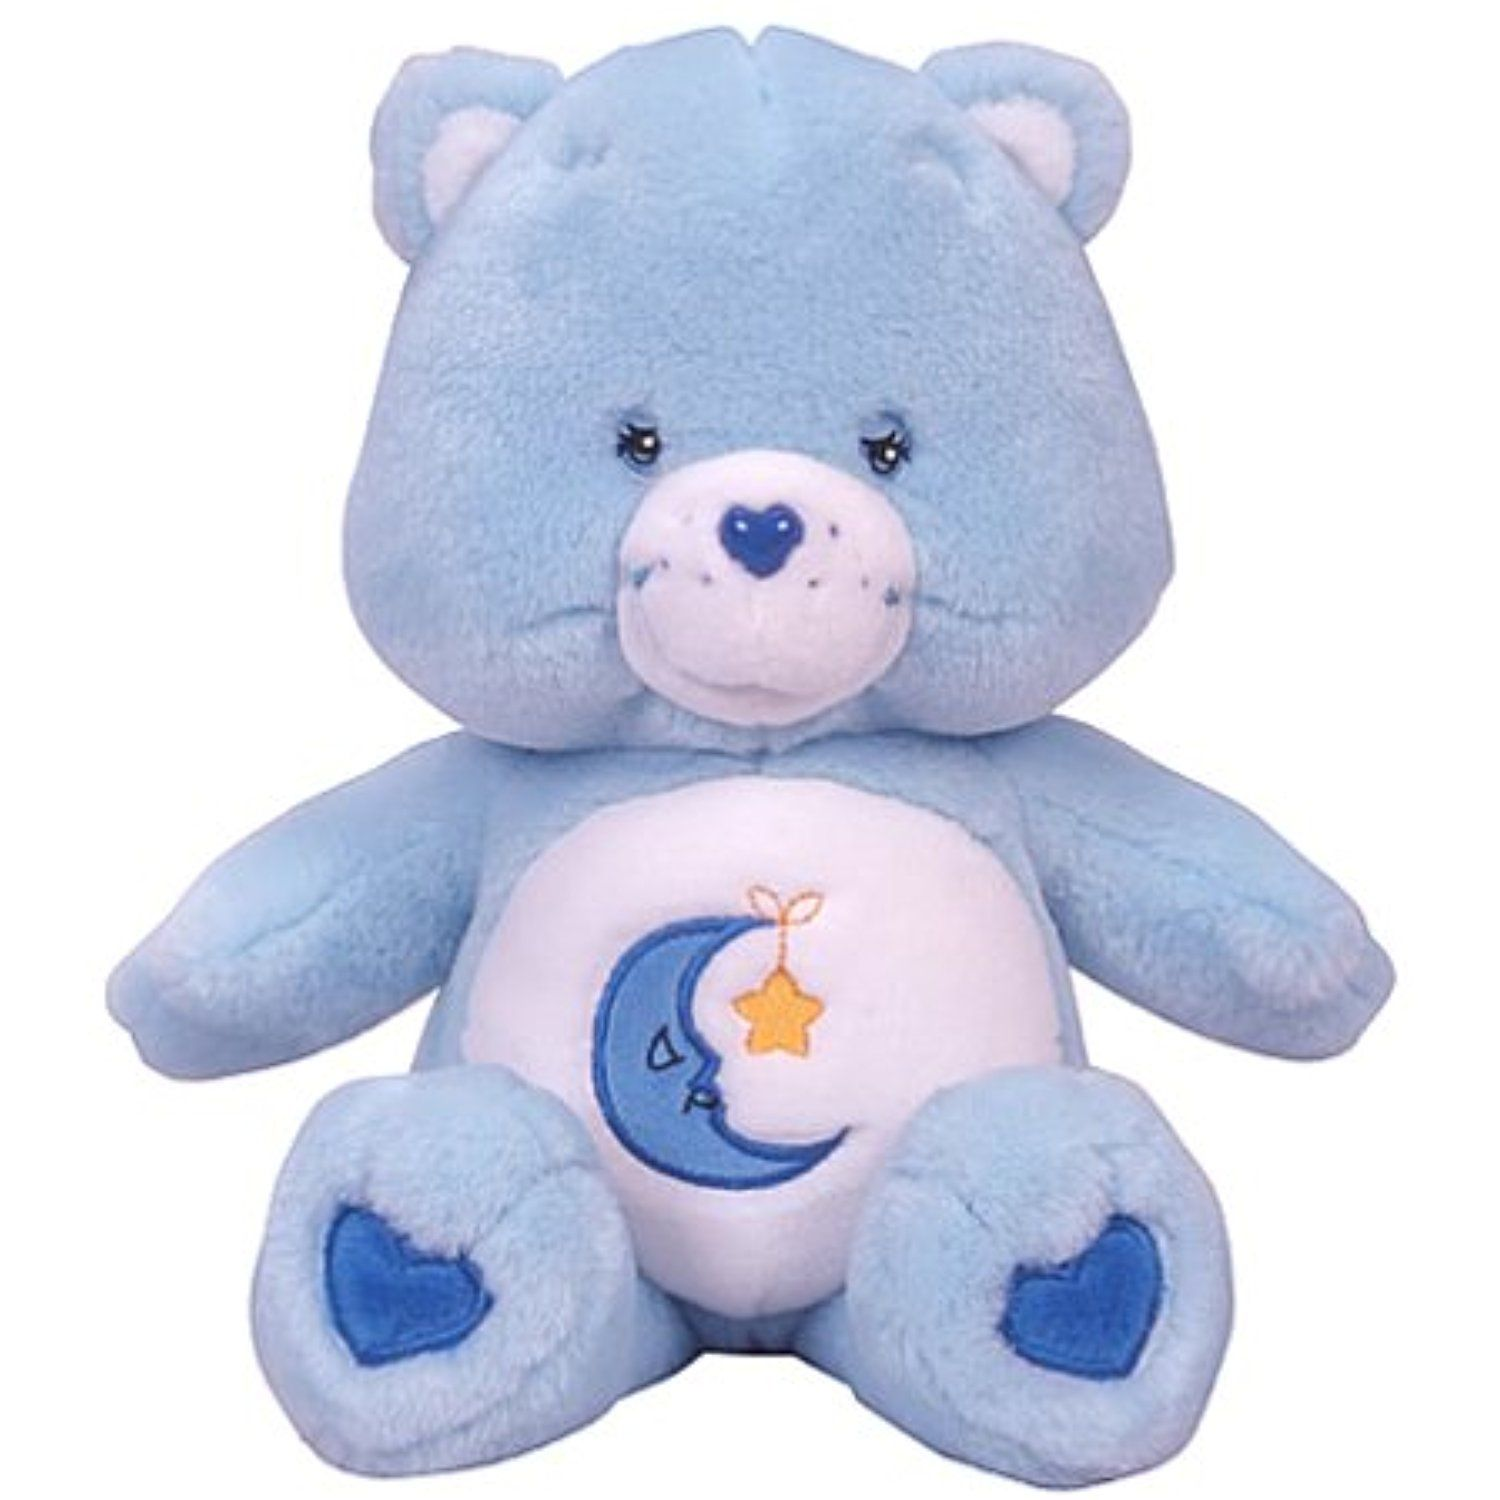 Care Bears Bedtime Bear 13 Plush You Can Find More Details By Visiting The Image L Care Bears Plush Care Bears Stuffed Animals Teddy Bear Stuffed Animal [ 1500 x 1500 Pixel ]